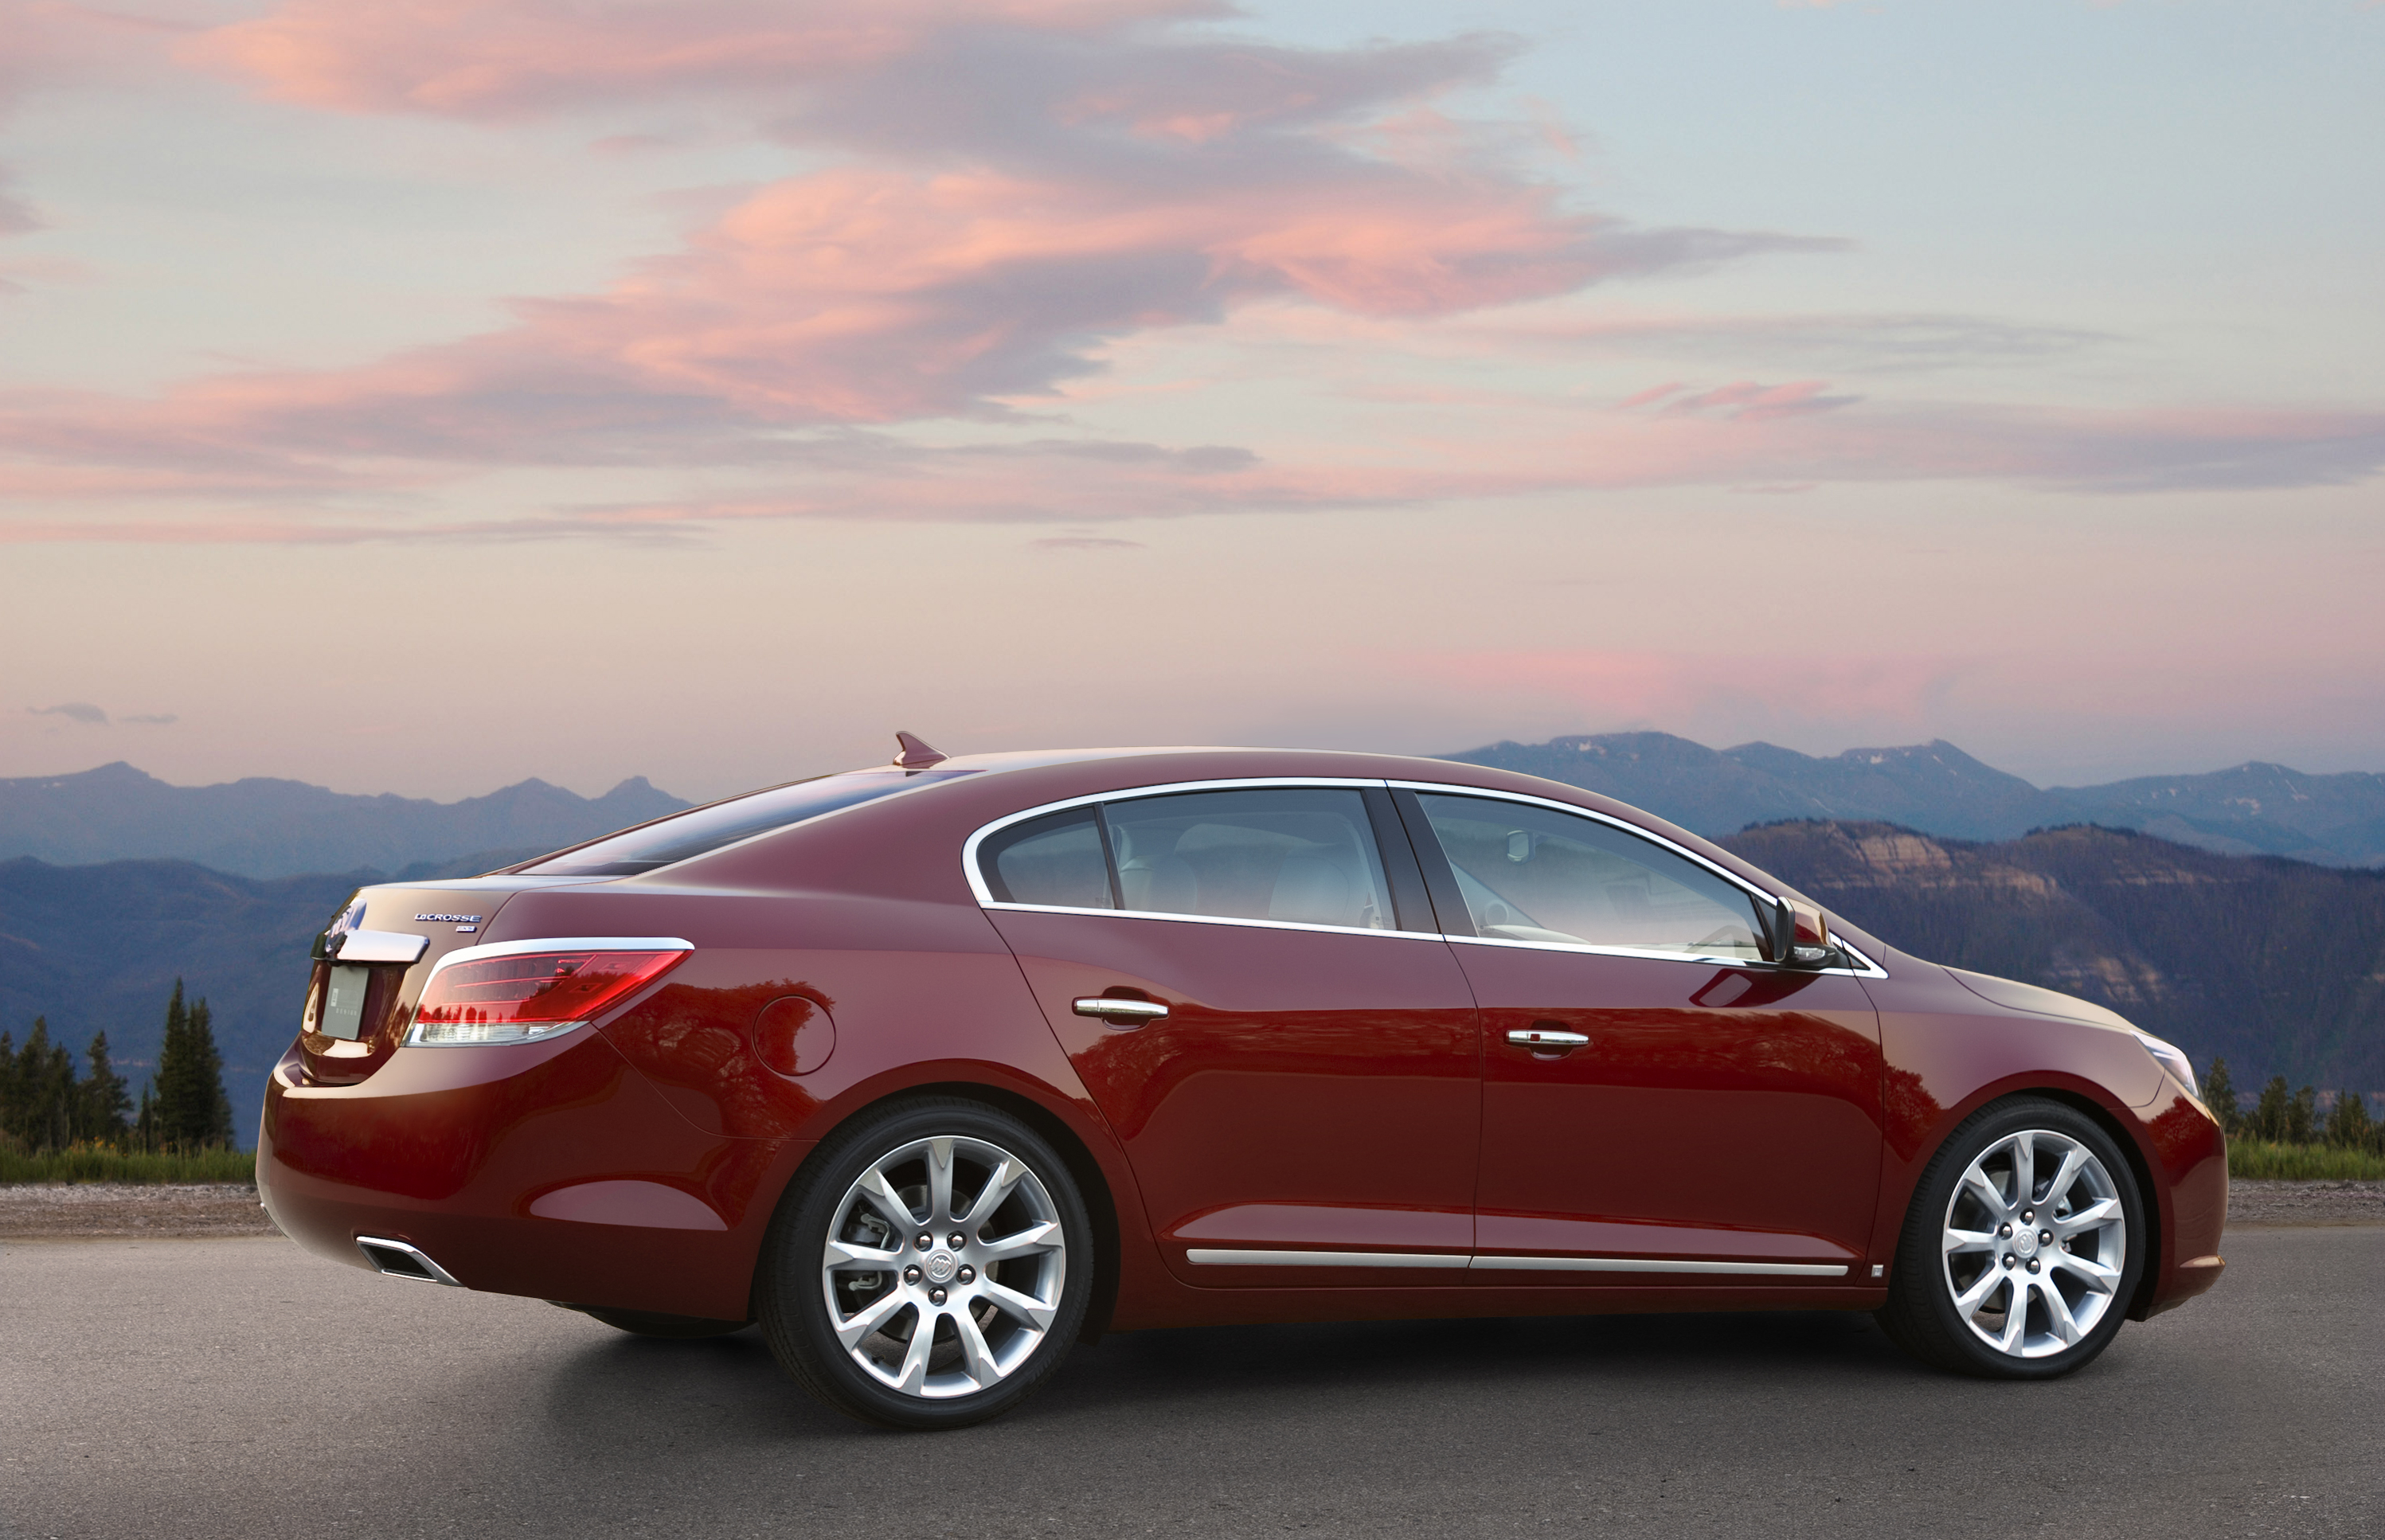 Buick Announces Pricing For The 2010 Lacrosse Luxury Sedan